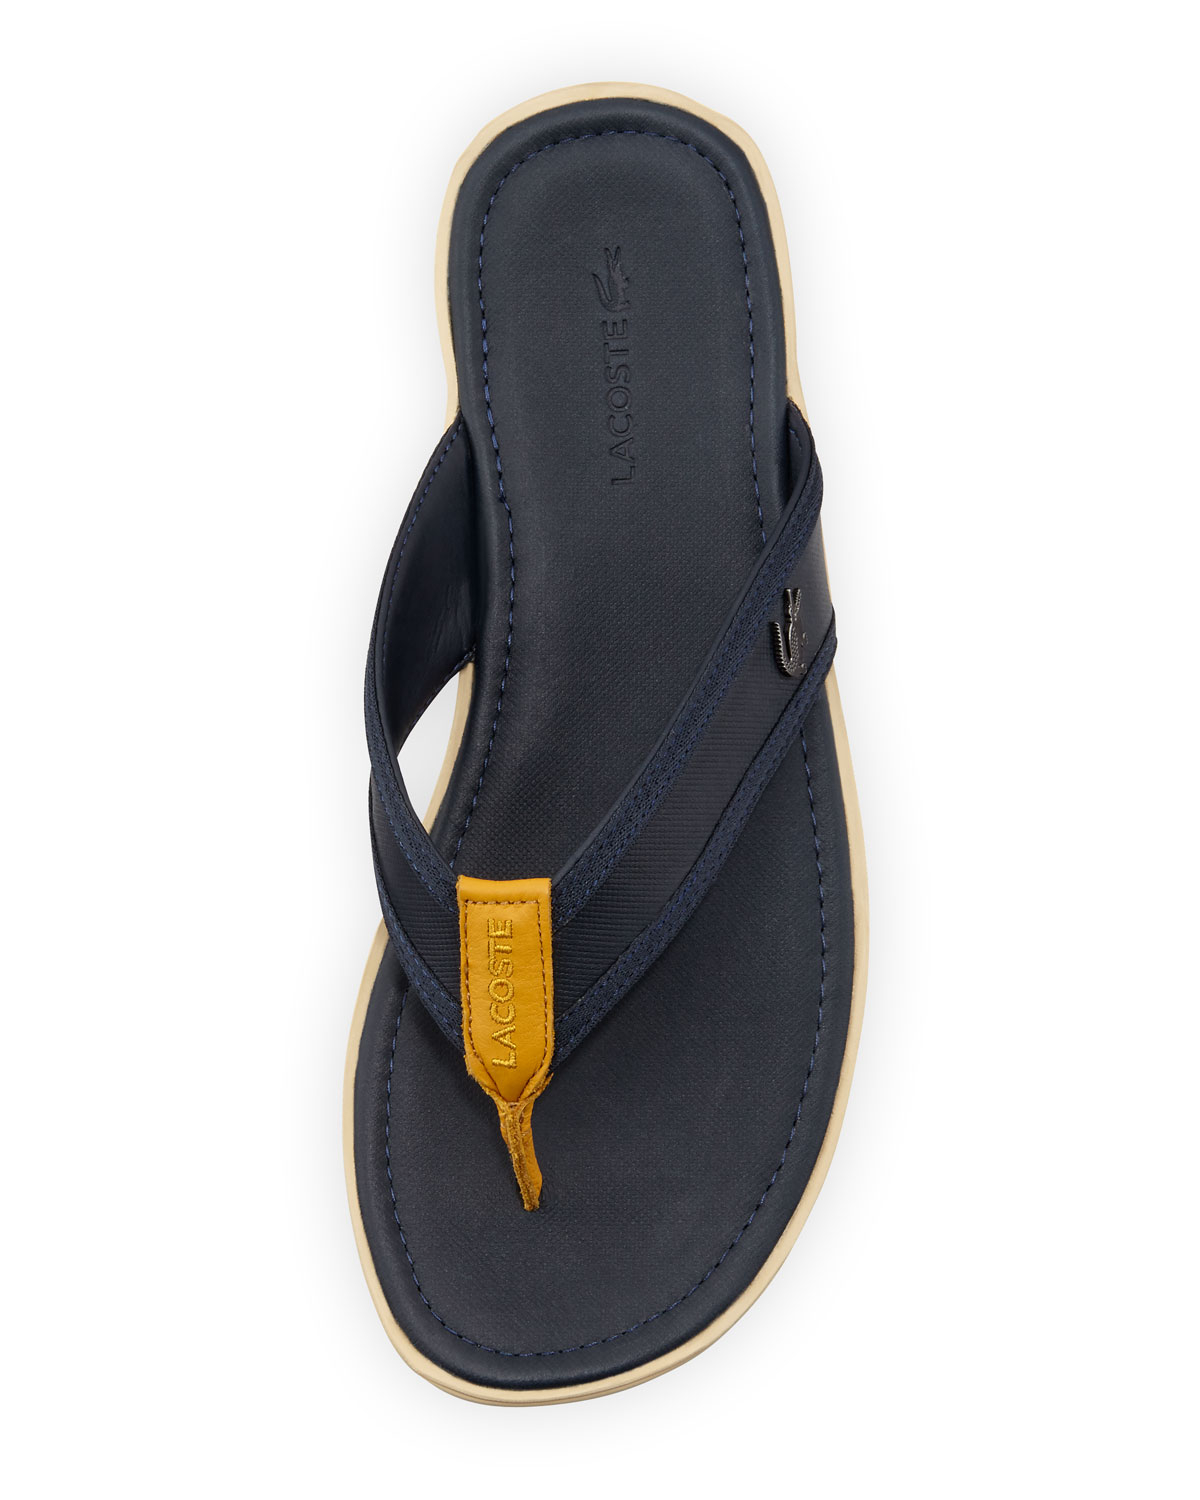 de57a05a3199bd Lyst - Lacoste Carros Mens Thong Sandal in Yellow for Men